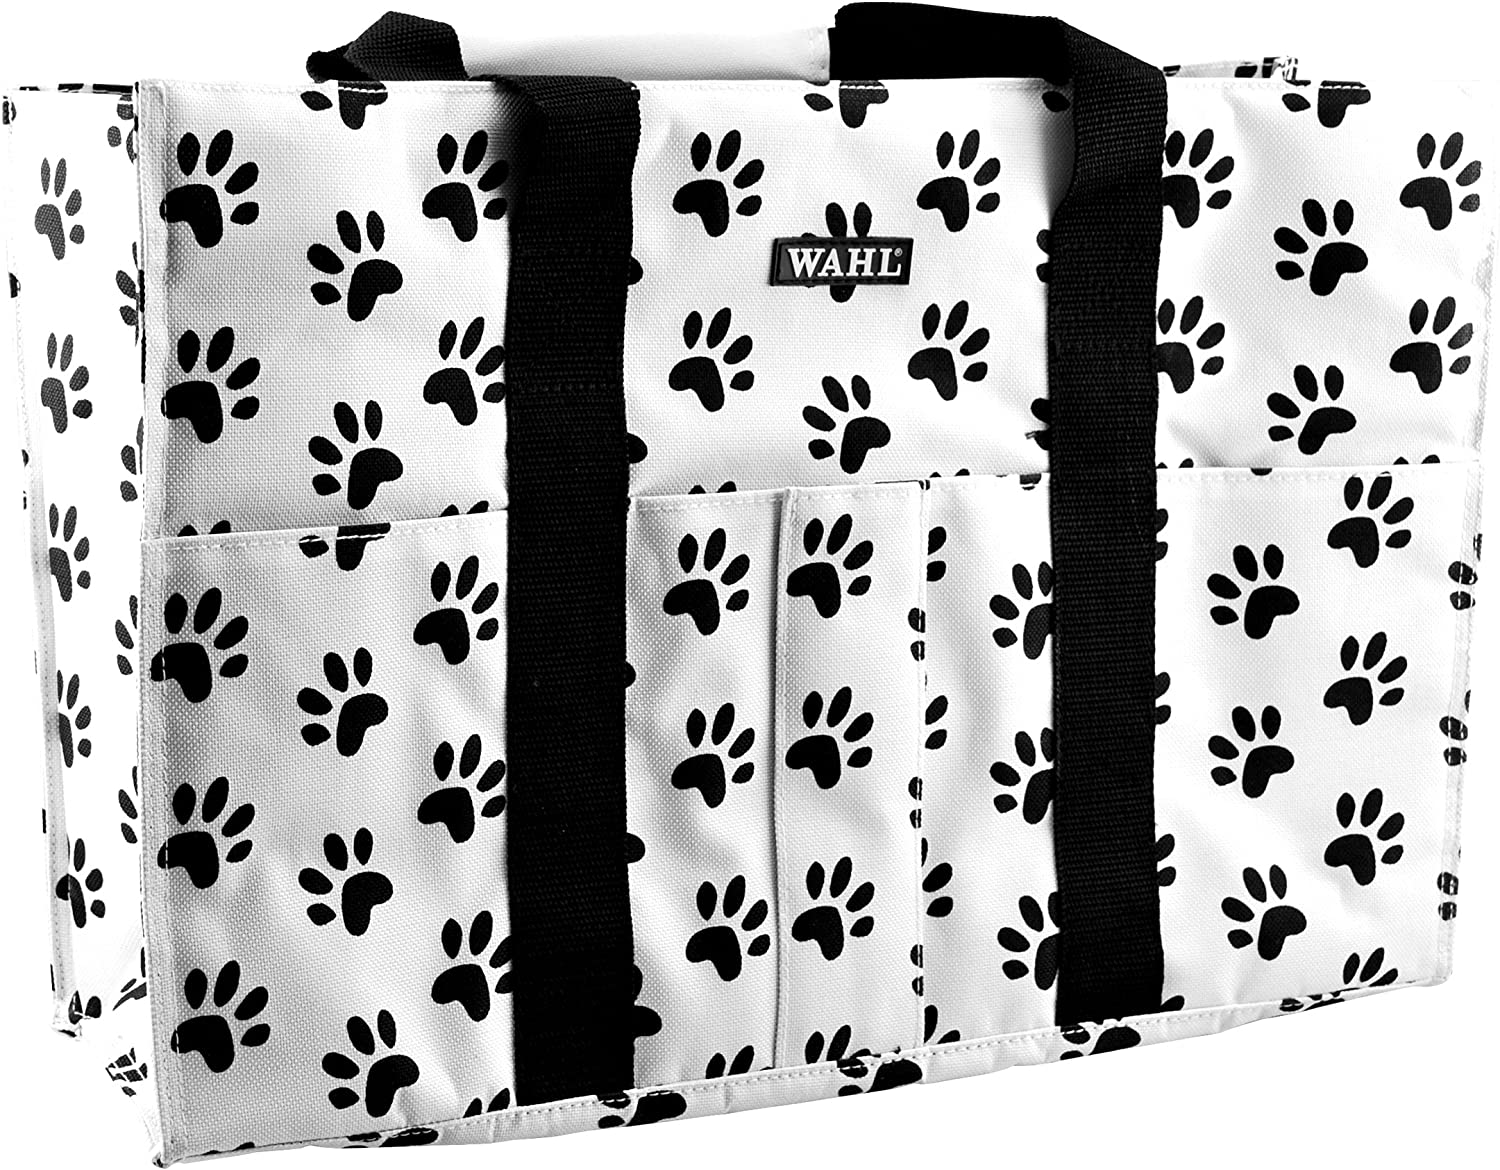 Wahl Professional Animal Travel and Tote Bag